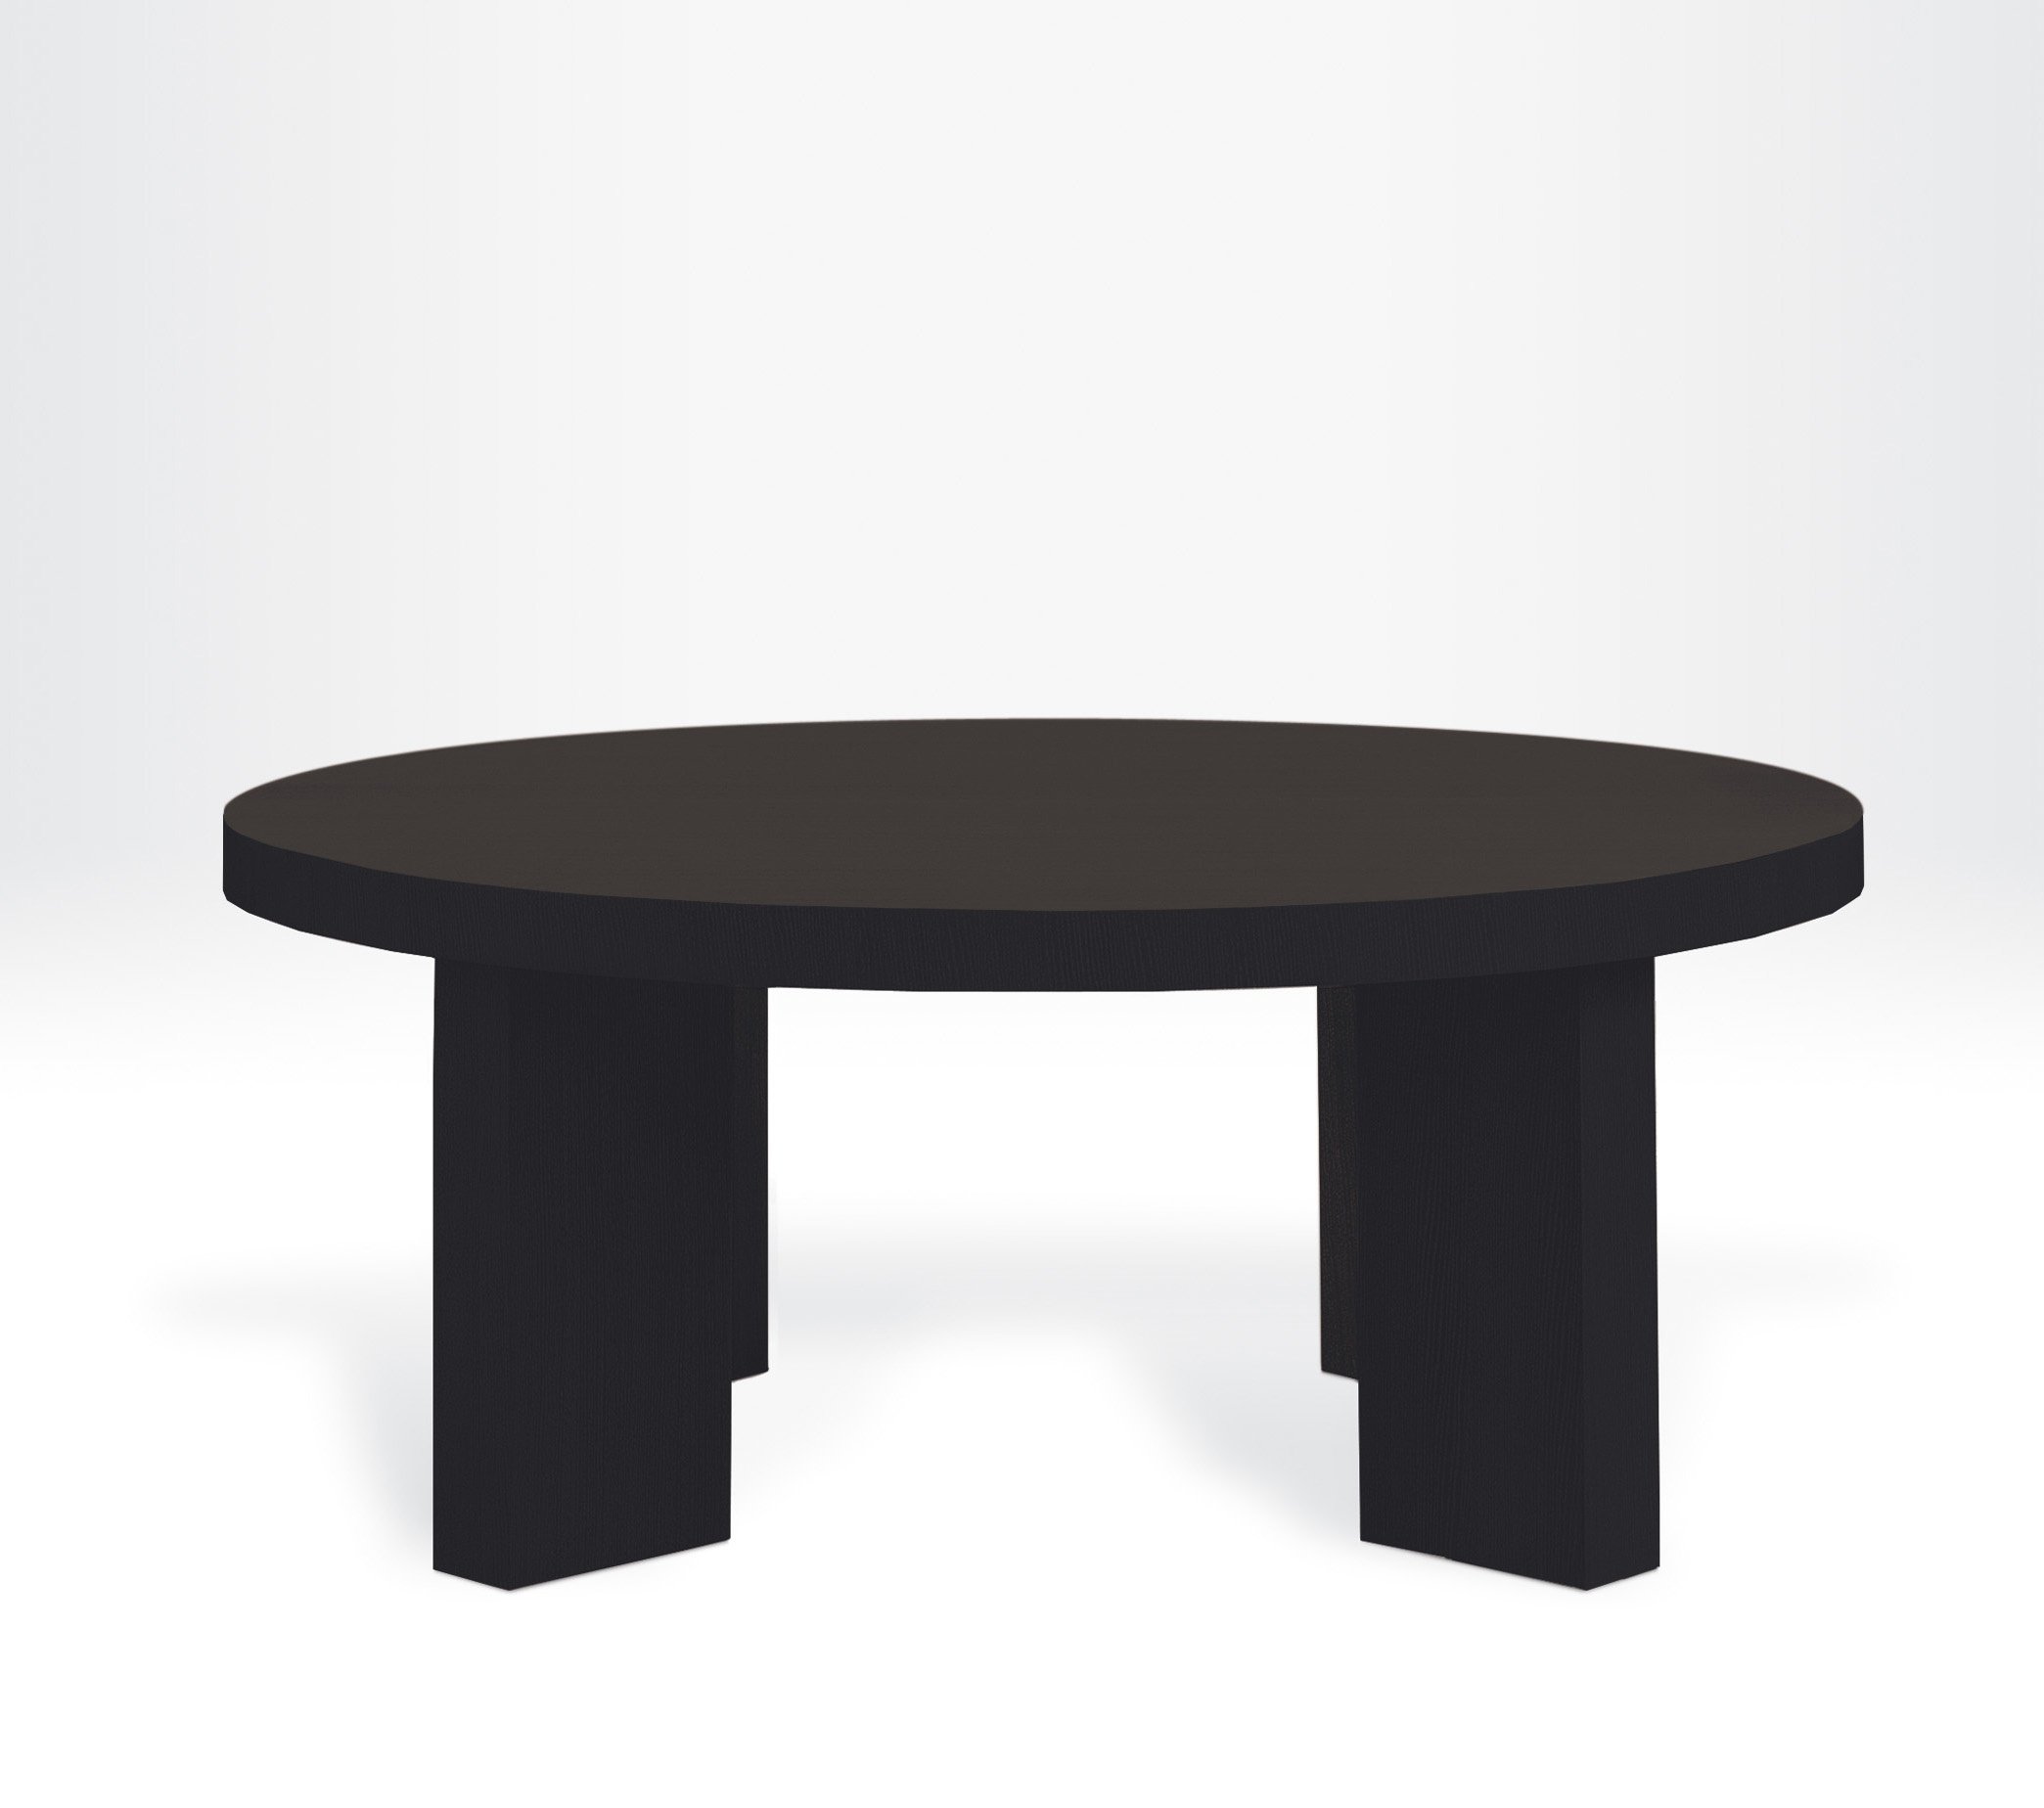 Dining table New York round shape Armani Casa Luxury furniture MR